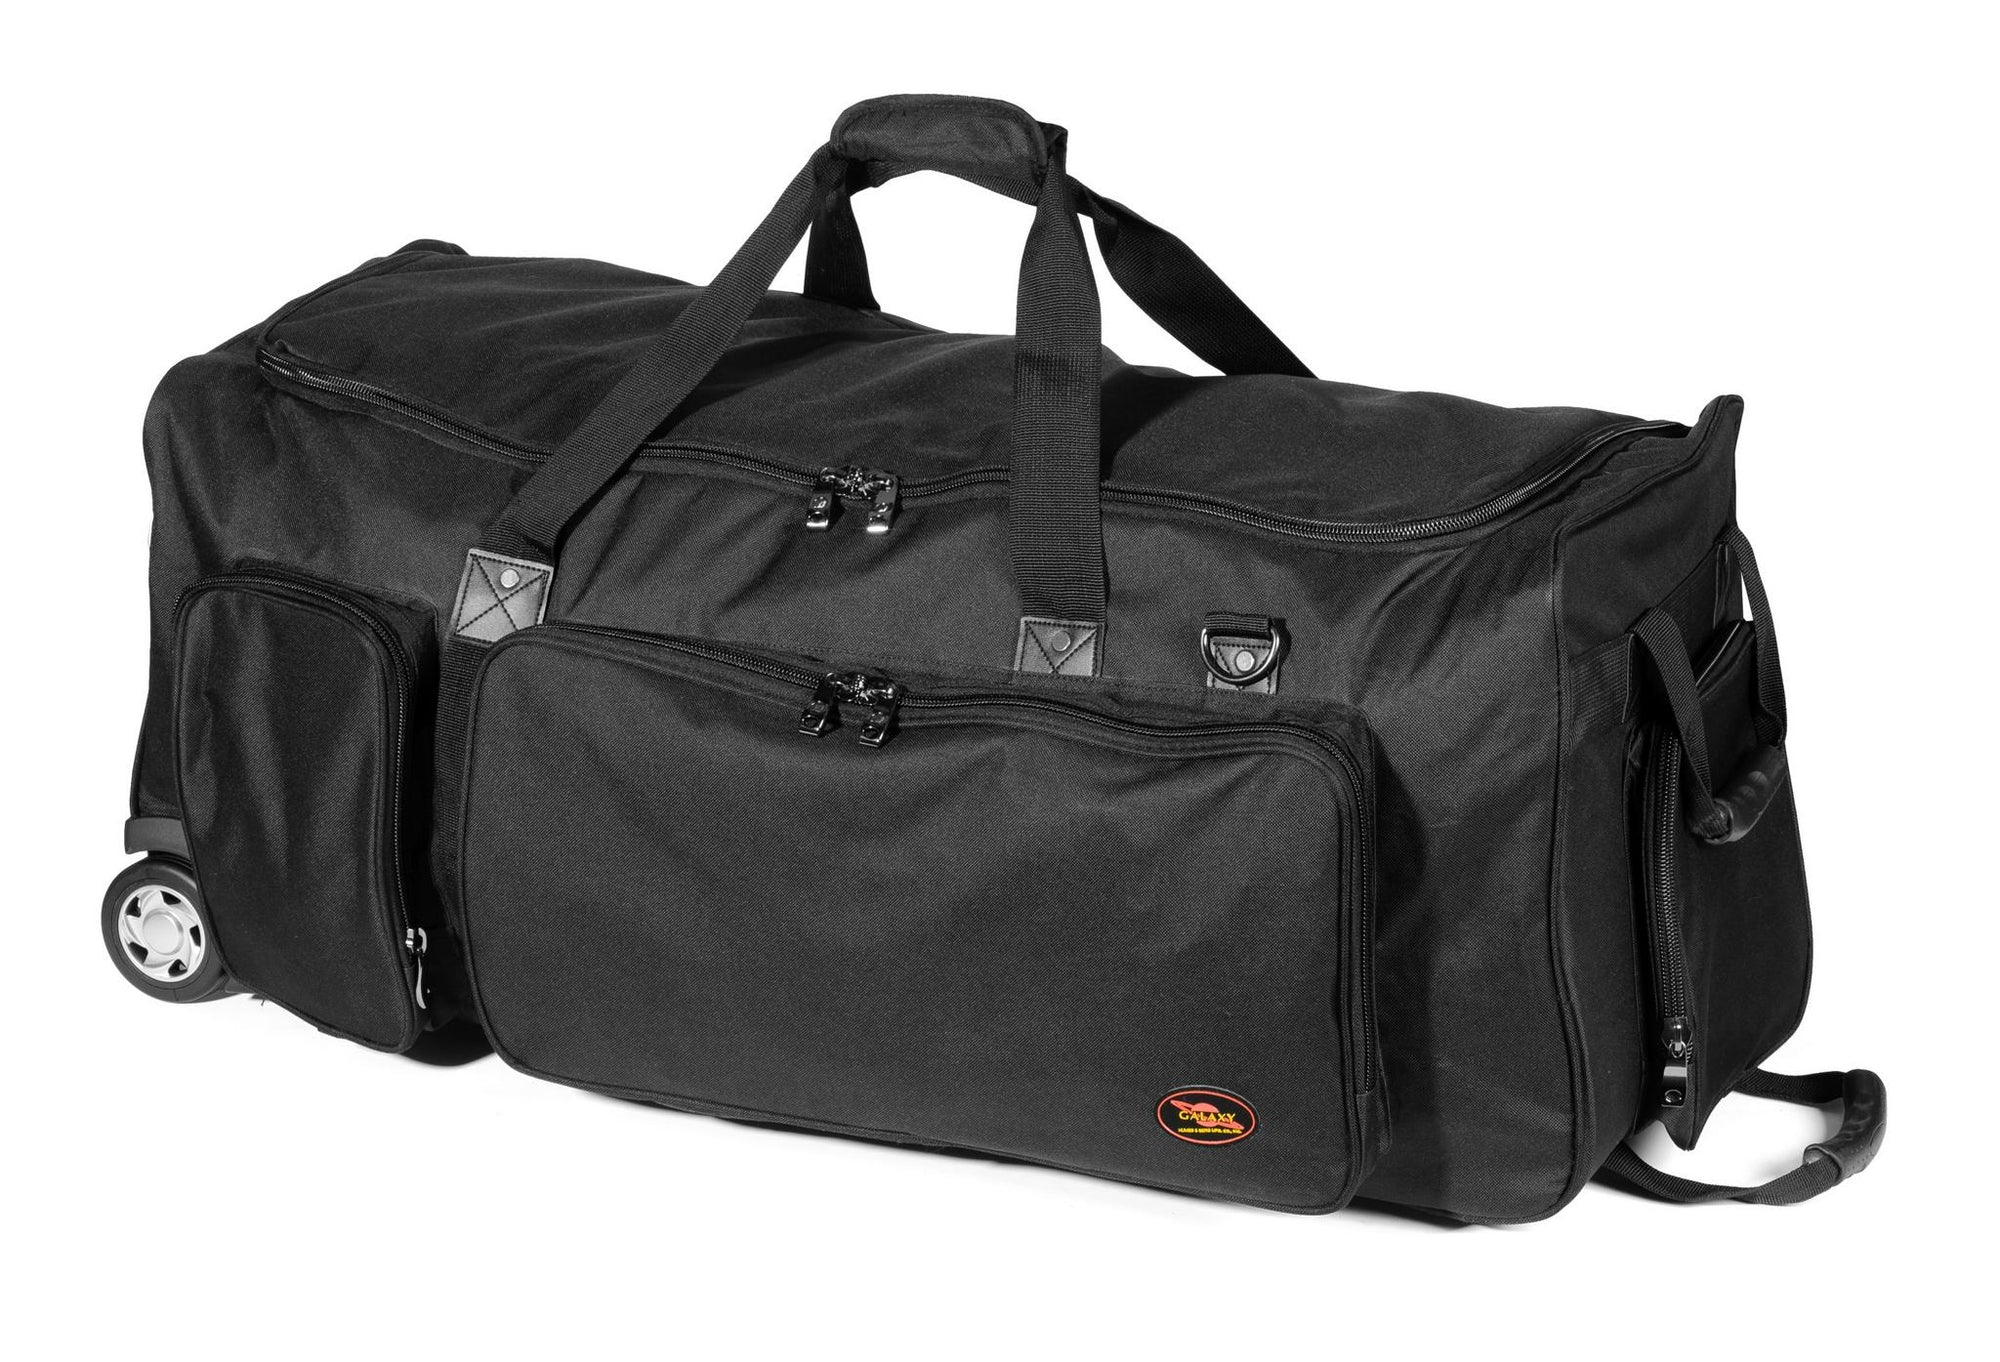 H&B  Galaxy 45.5 x 14.5 Inches Companion Bag Tilt-n-Pull